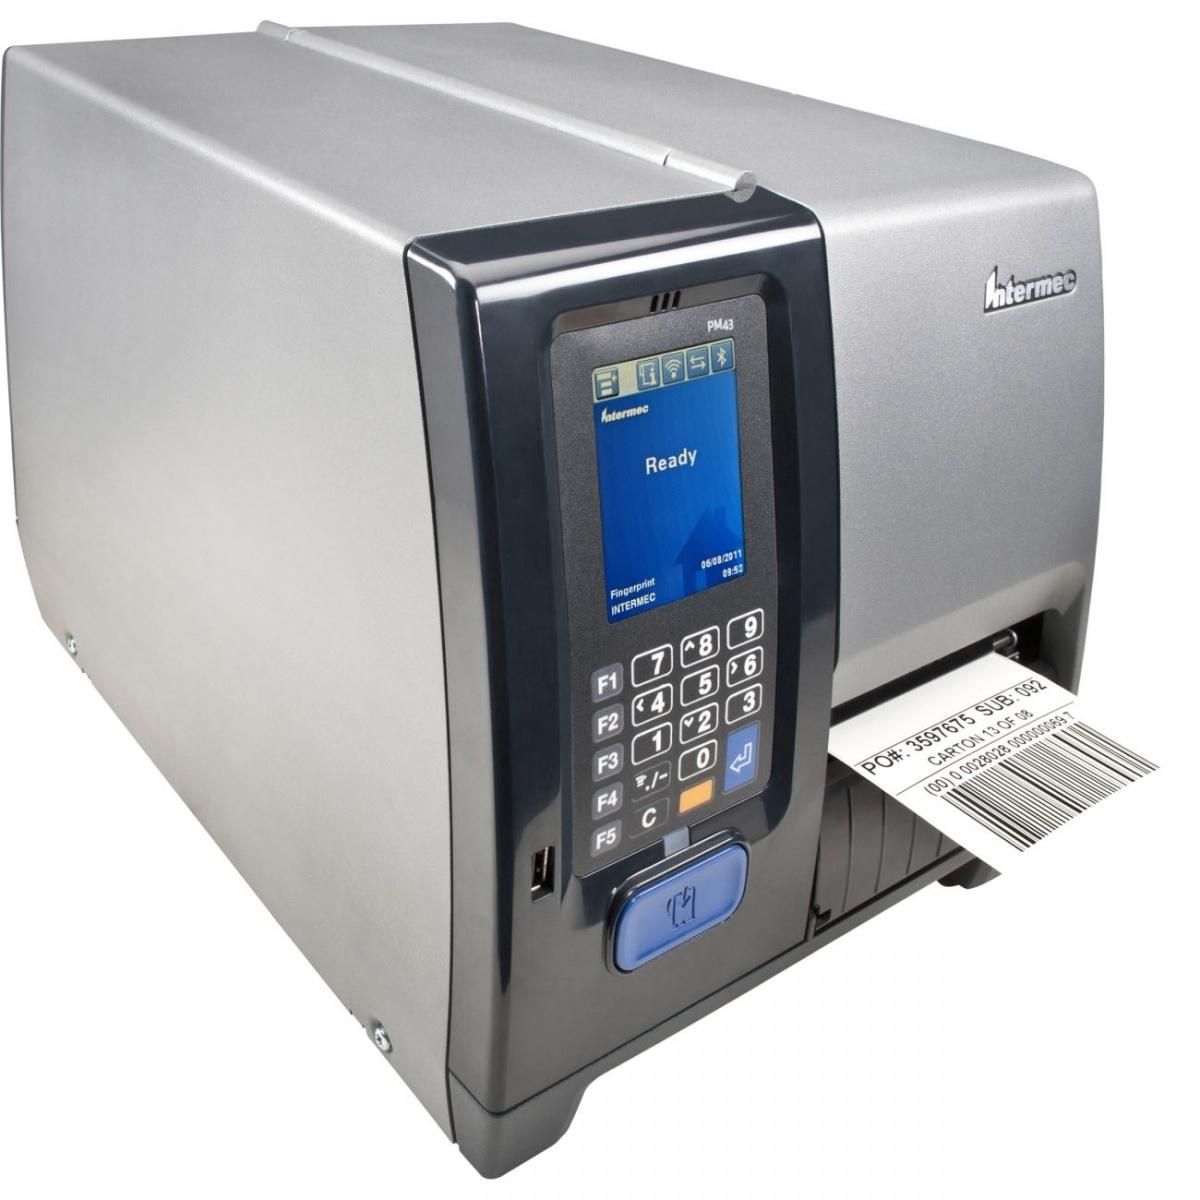 Термотрансферный принтер Intermec PM23C TT 406dpi, Ethernet, Dome Door, Rew+LTS, RTC, Touch-1